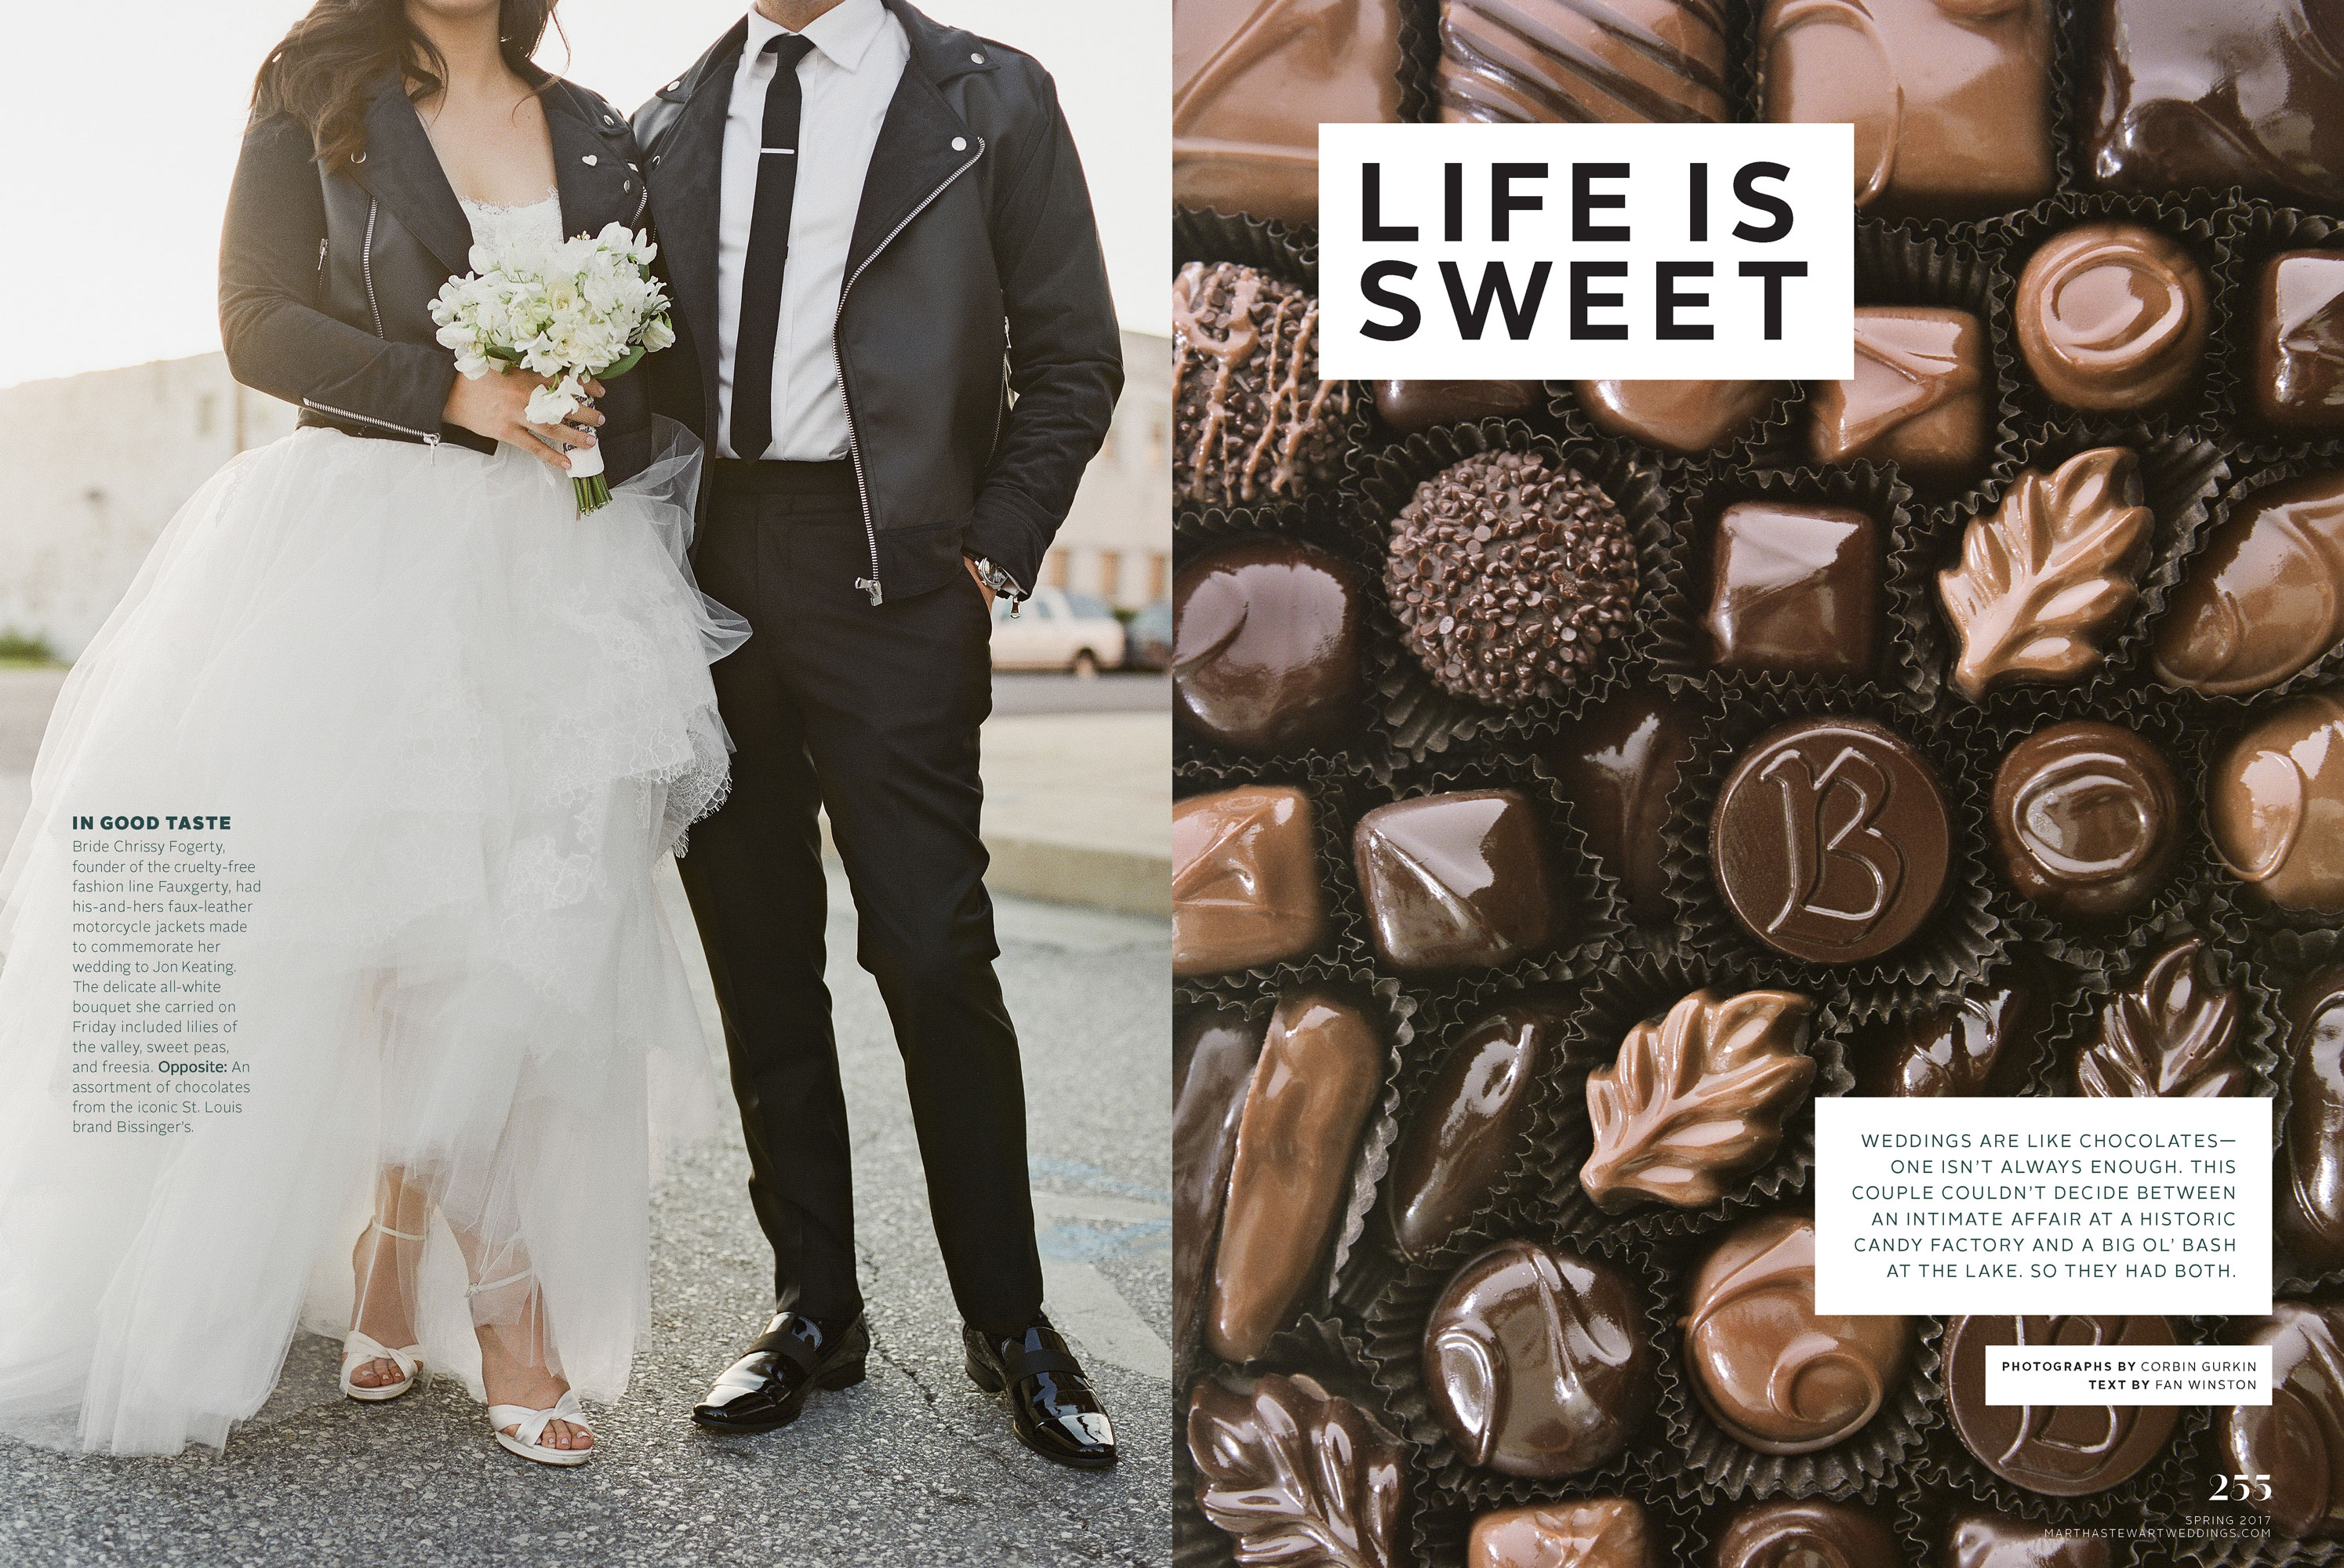 Life is Sweet by Megan Hillman